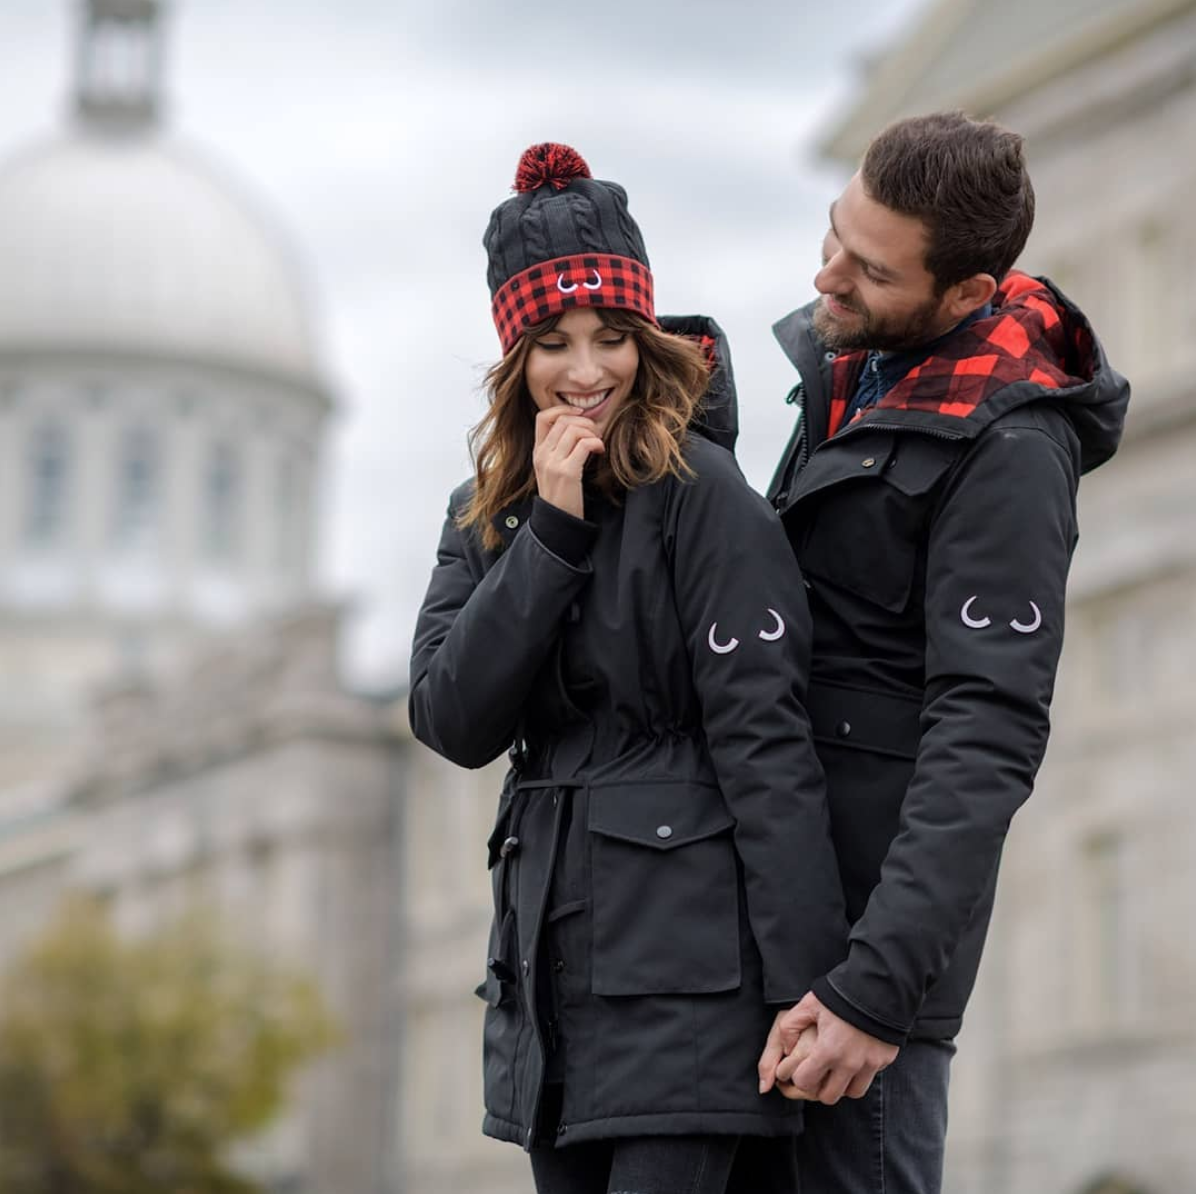 Wuxly Outerwear Canadian Wuxly Canadian MovementSustainable Outerwear MovementSustainable Wuxly 9E2IDH